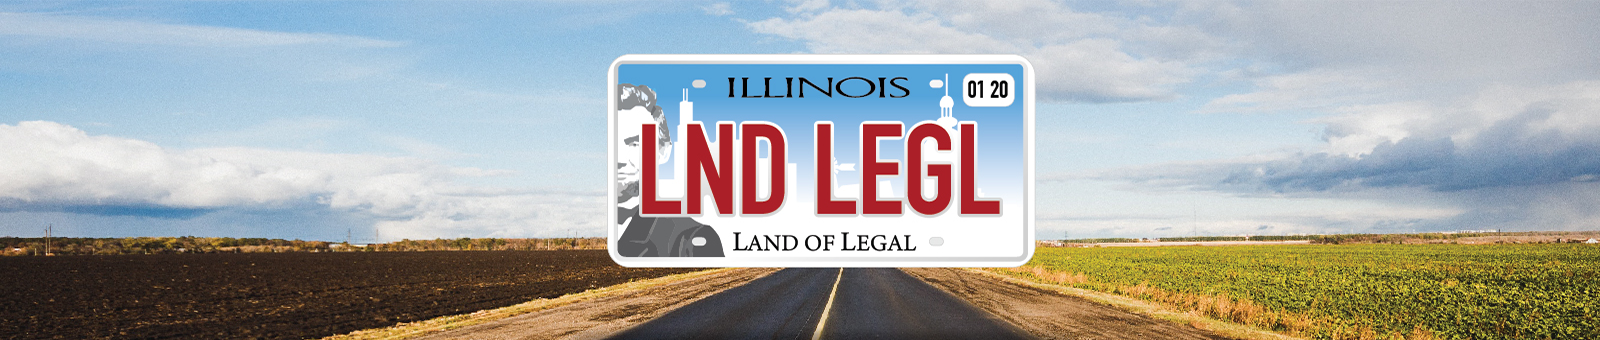 Land Of Legal Illinois Recreational Marijuana License Plate